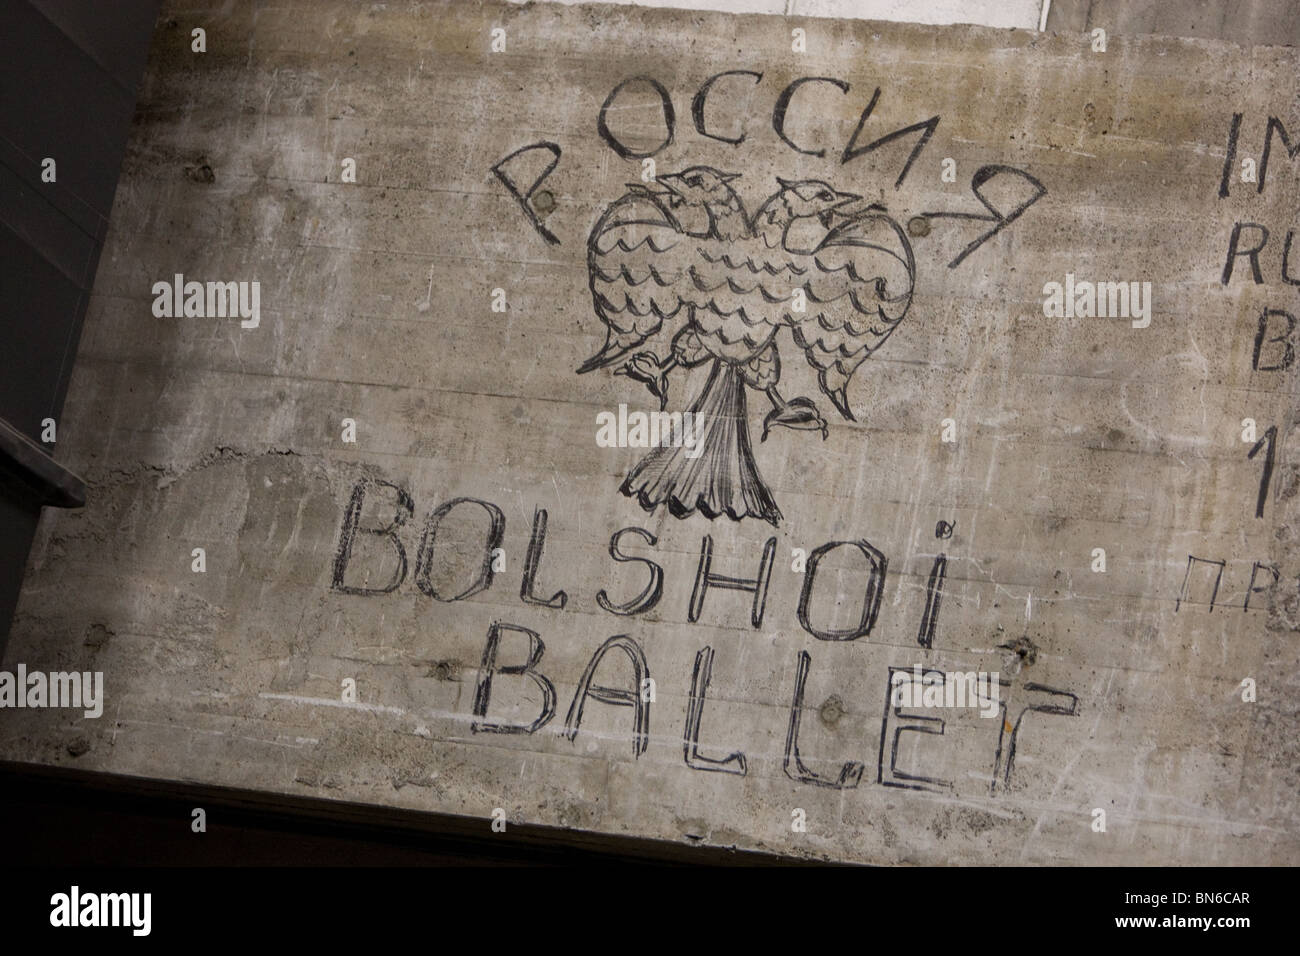 Insignia for the Bolshoi Ballet, written on a wall in the Bunka Kaikan hall, in Tokyo, Japan. - Stock Image